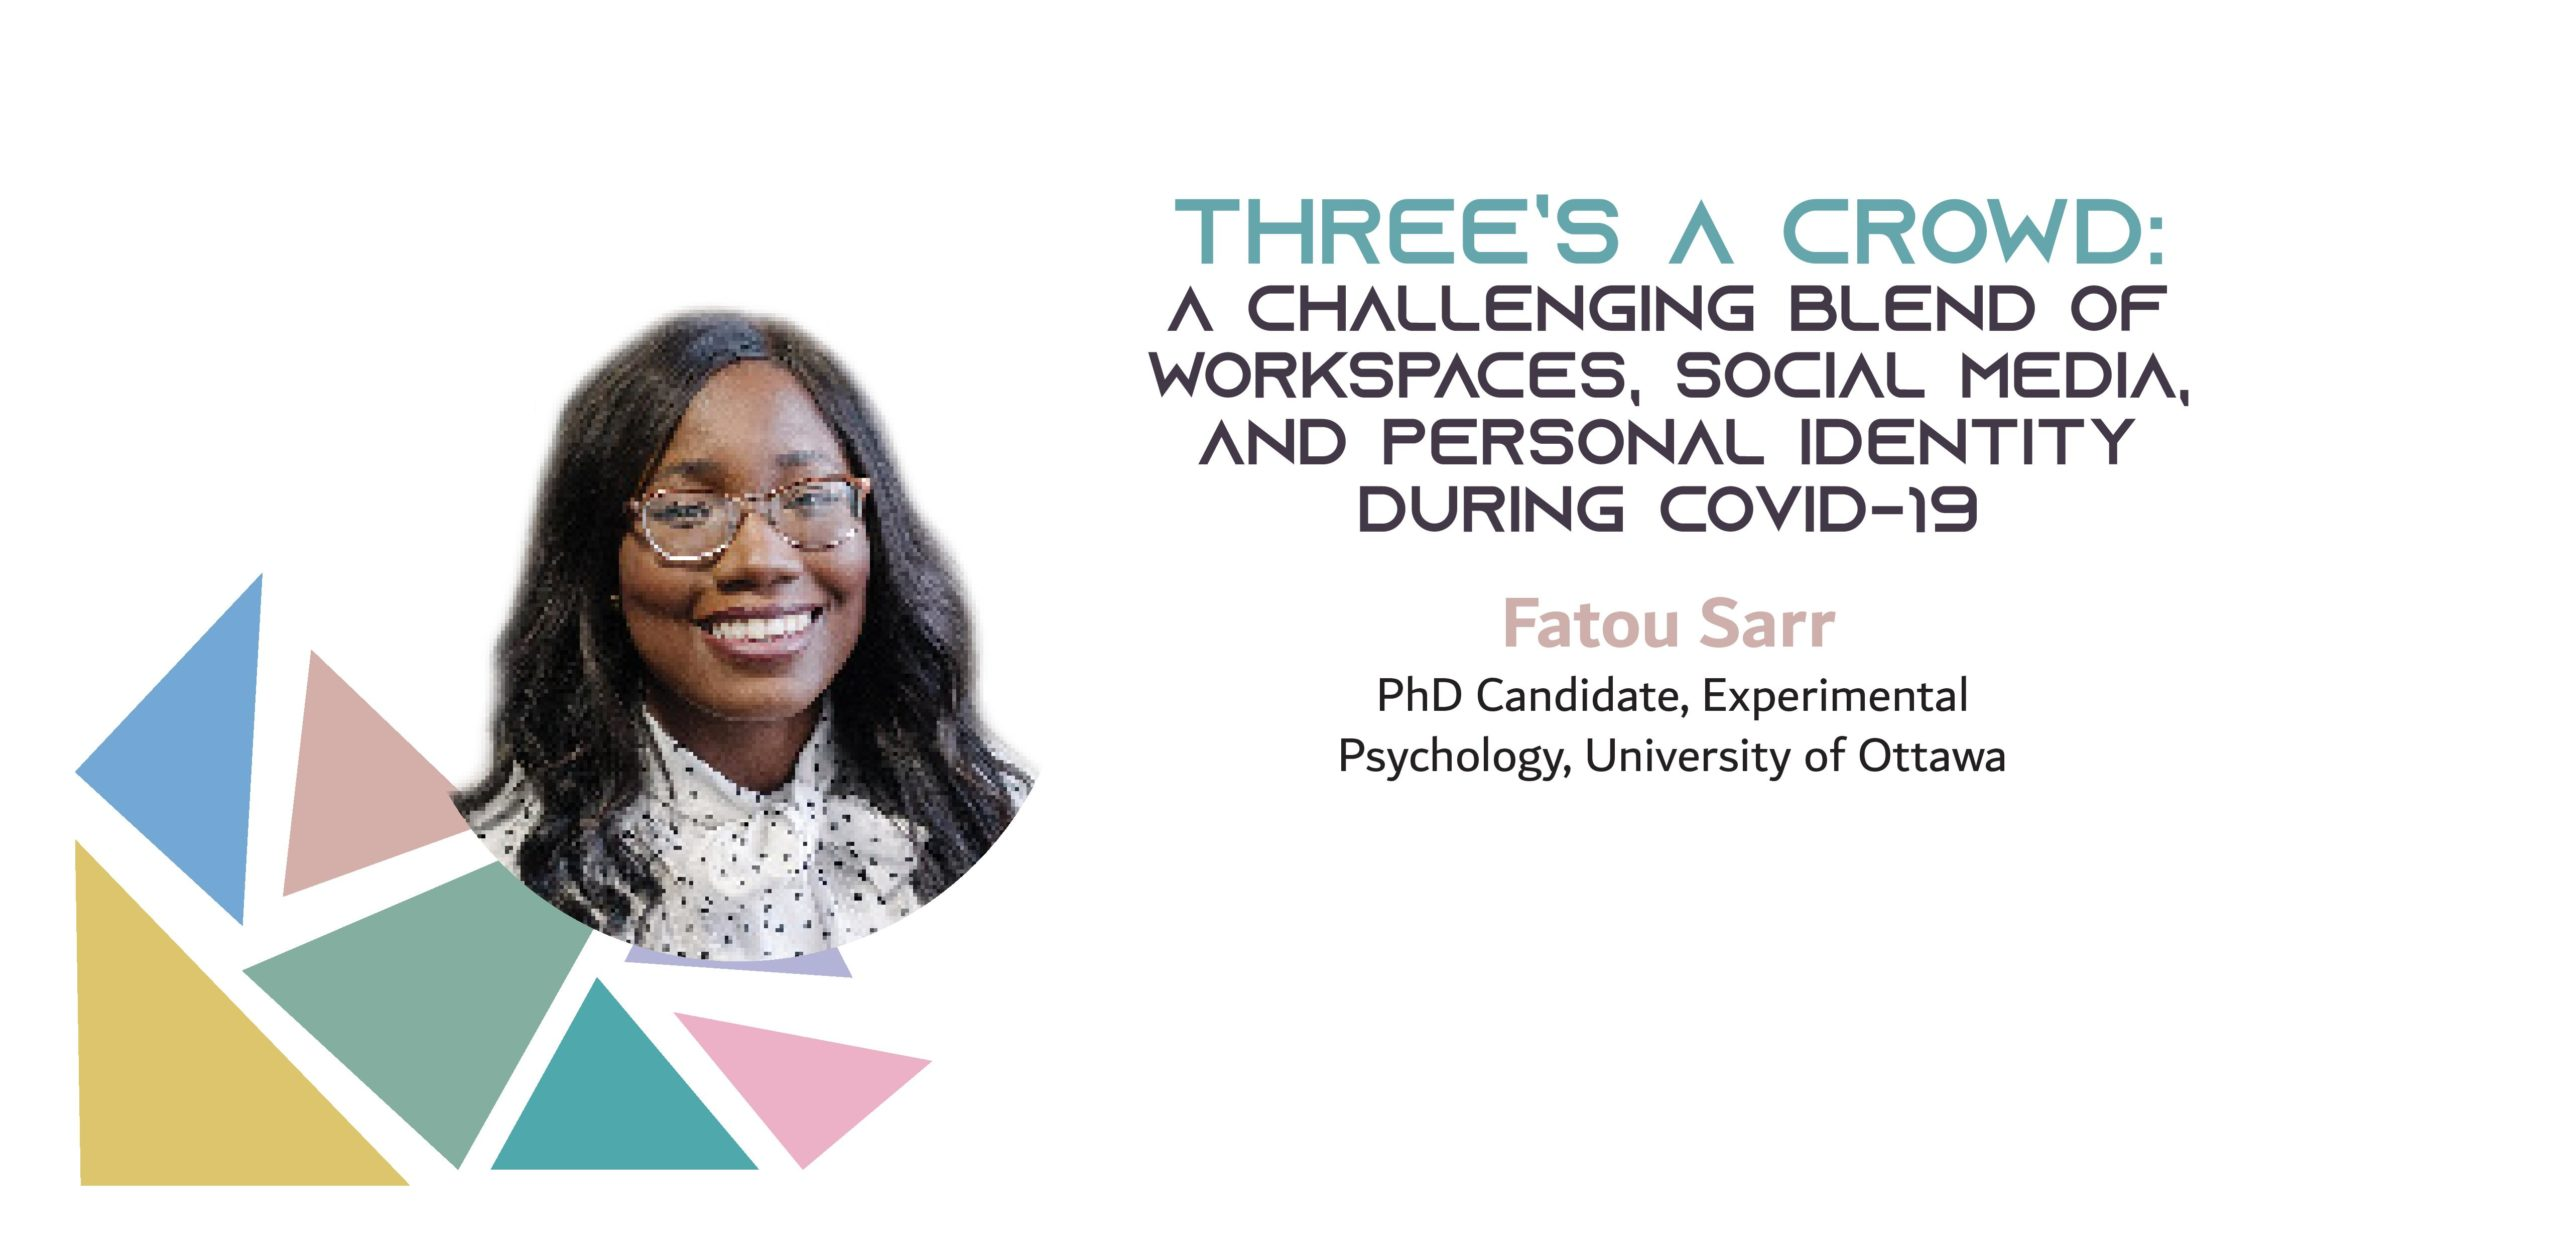 "Picture of a black woman on a background with colored triangles. The text reads: ""Three's a crowd: A challenging blend of workspaces, social media, and personal identity during COVID-19. Fatou Sarr, PhD Canddiate, Experimental Psychology, University of Ottawa"""